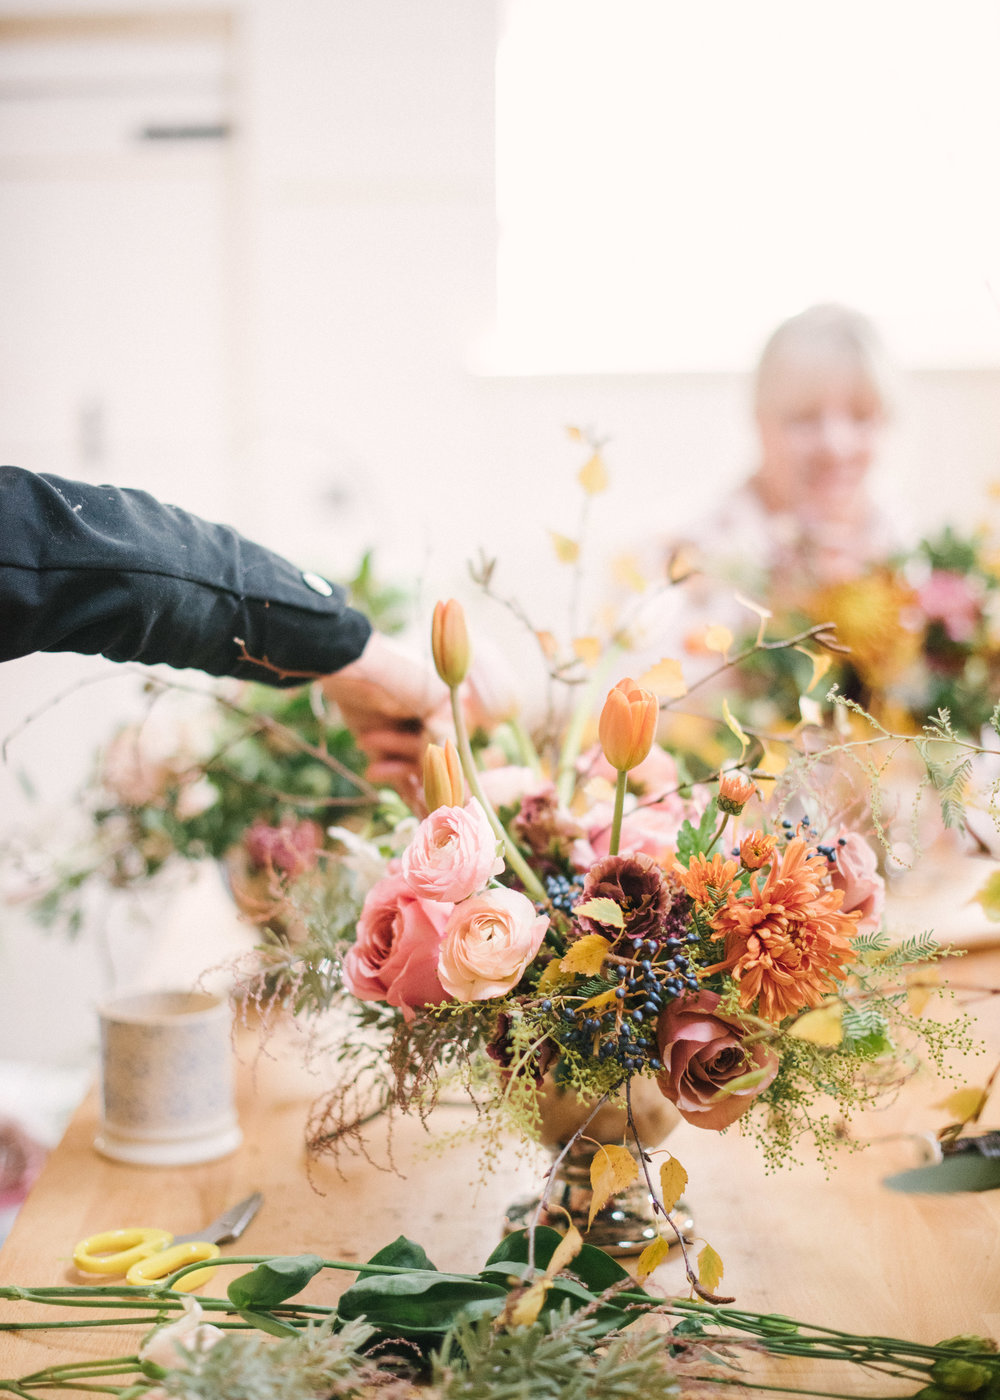 Image - Hannah Duffy - Florals - Moss & Stone Floral Design